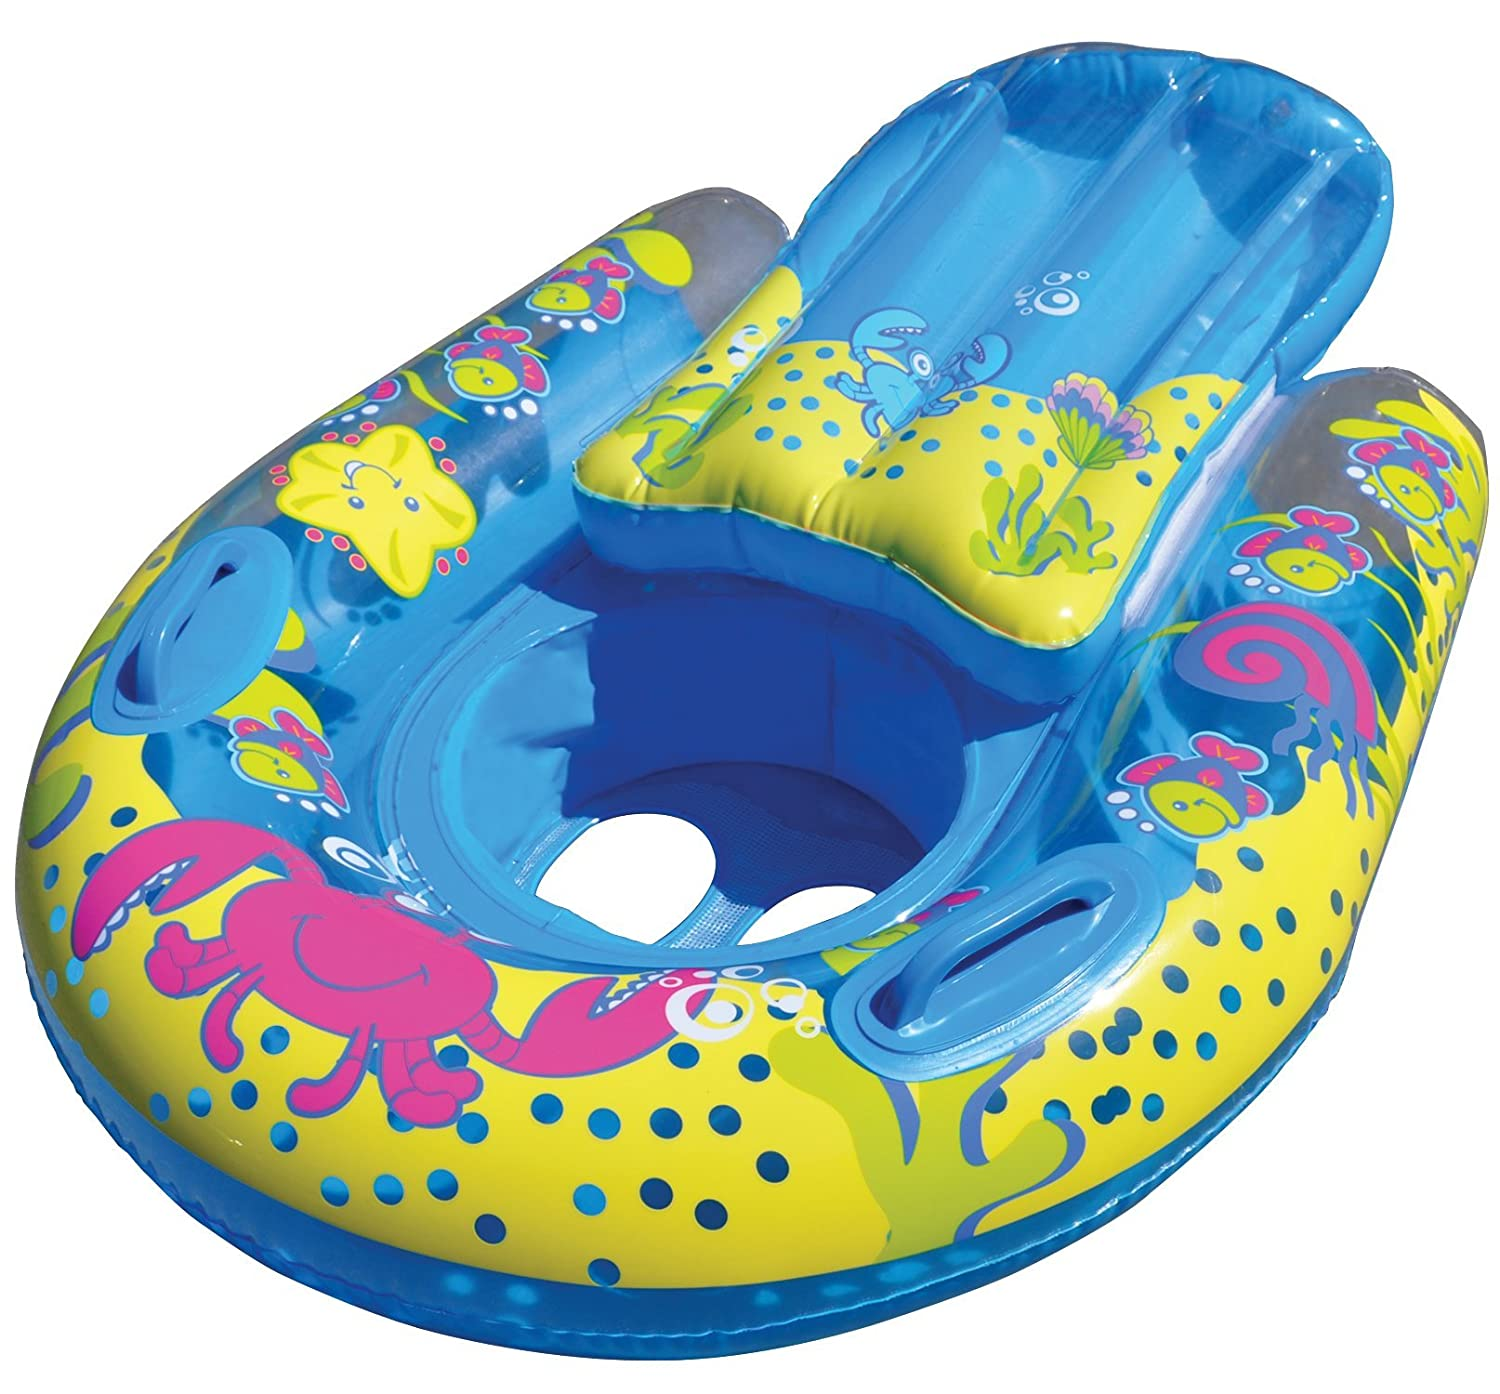 Top 9 Best Swim Floaties for Toddlers Reviews in 2020 4